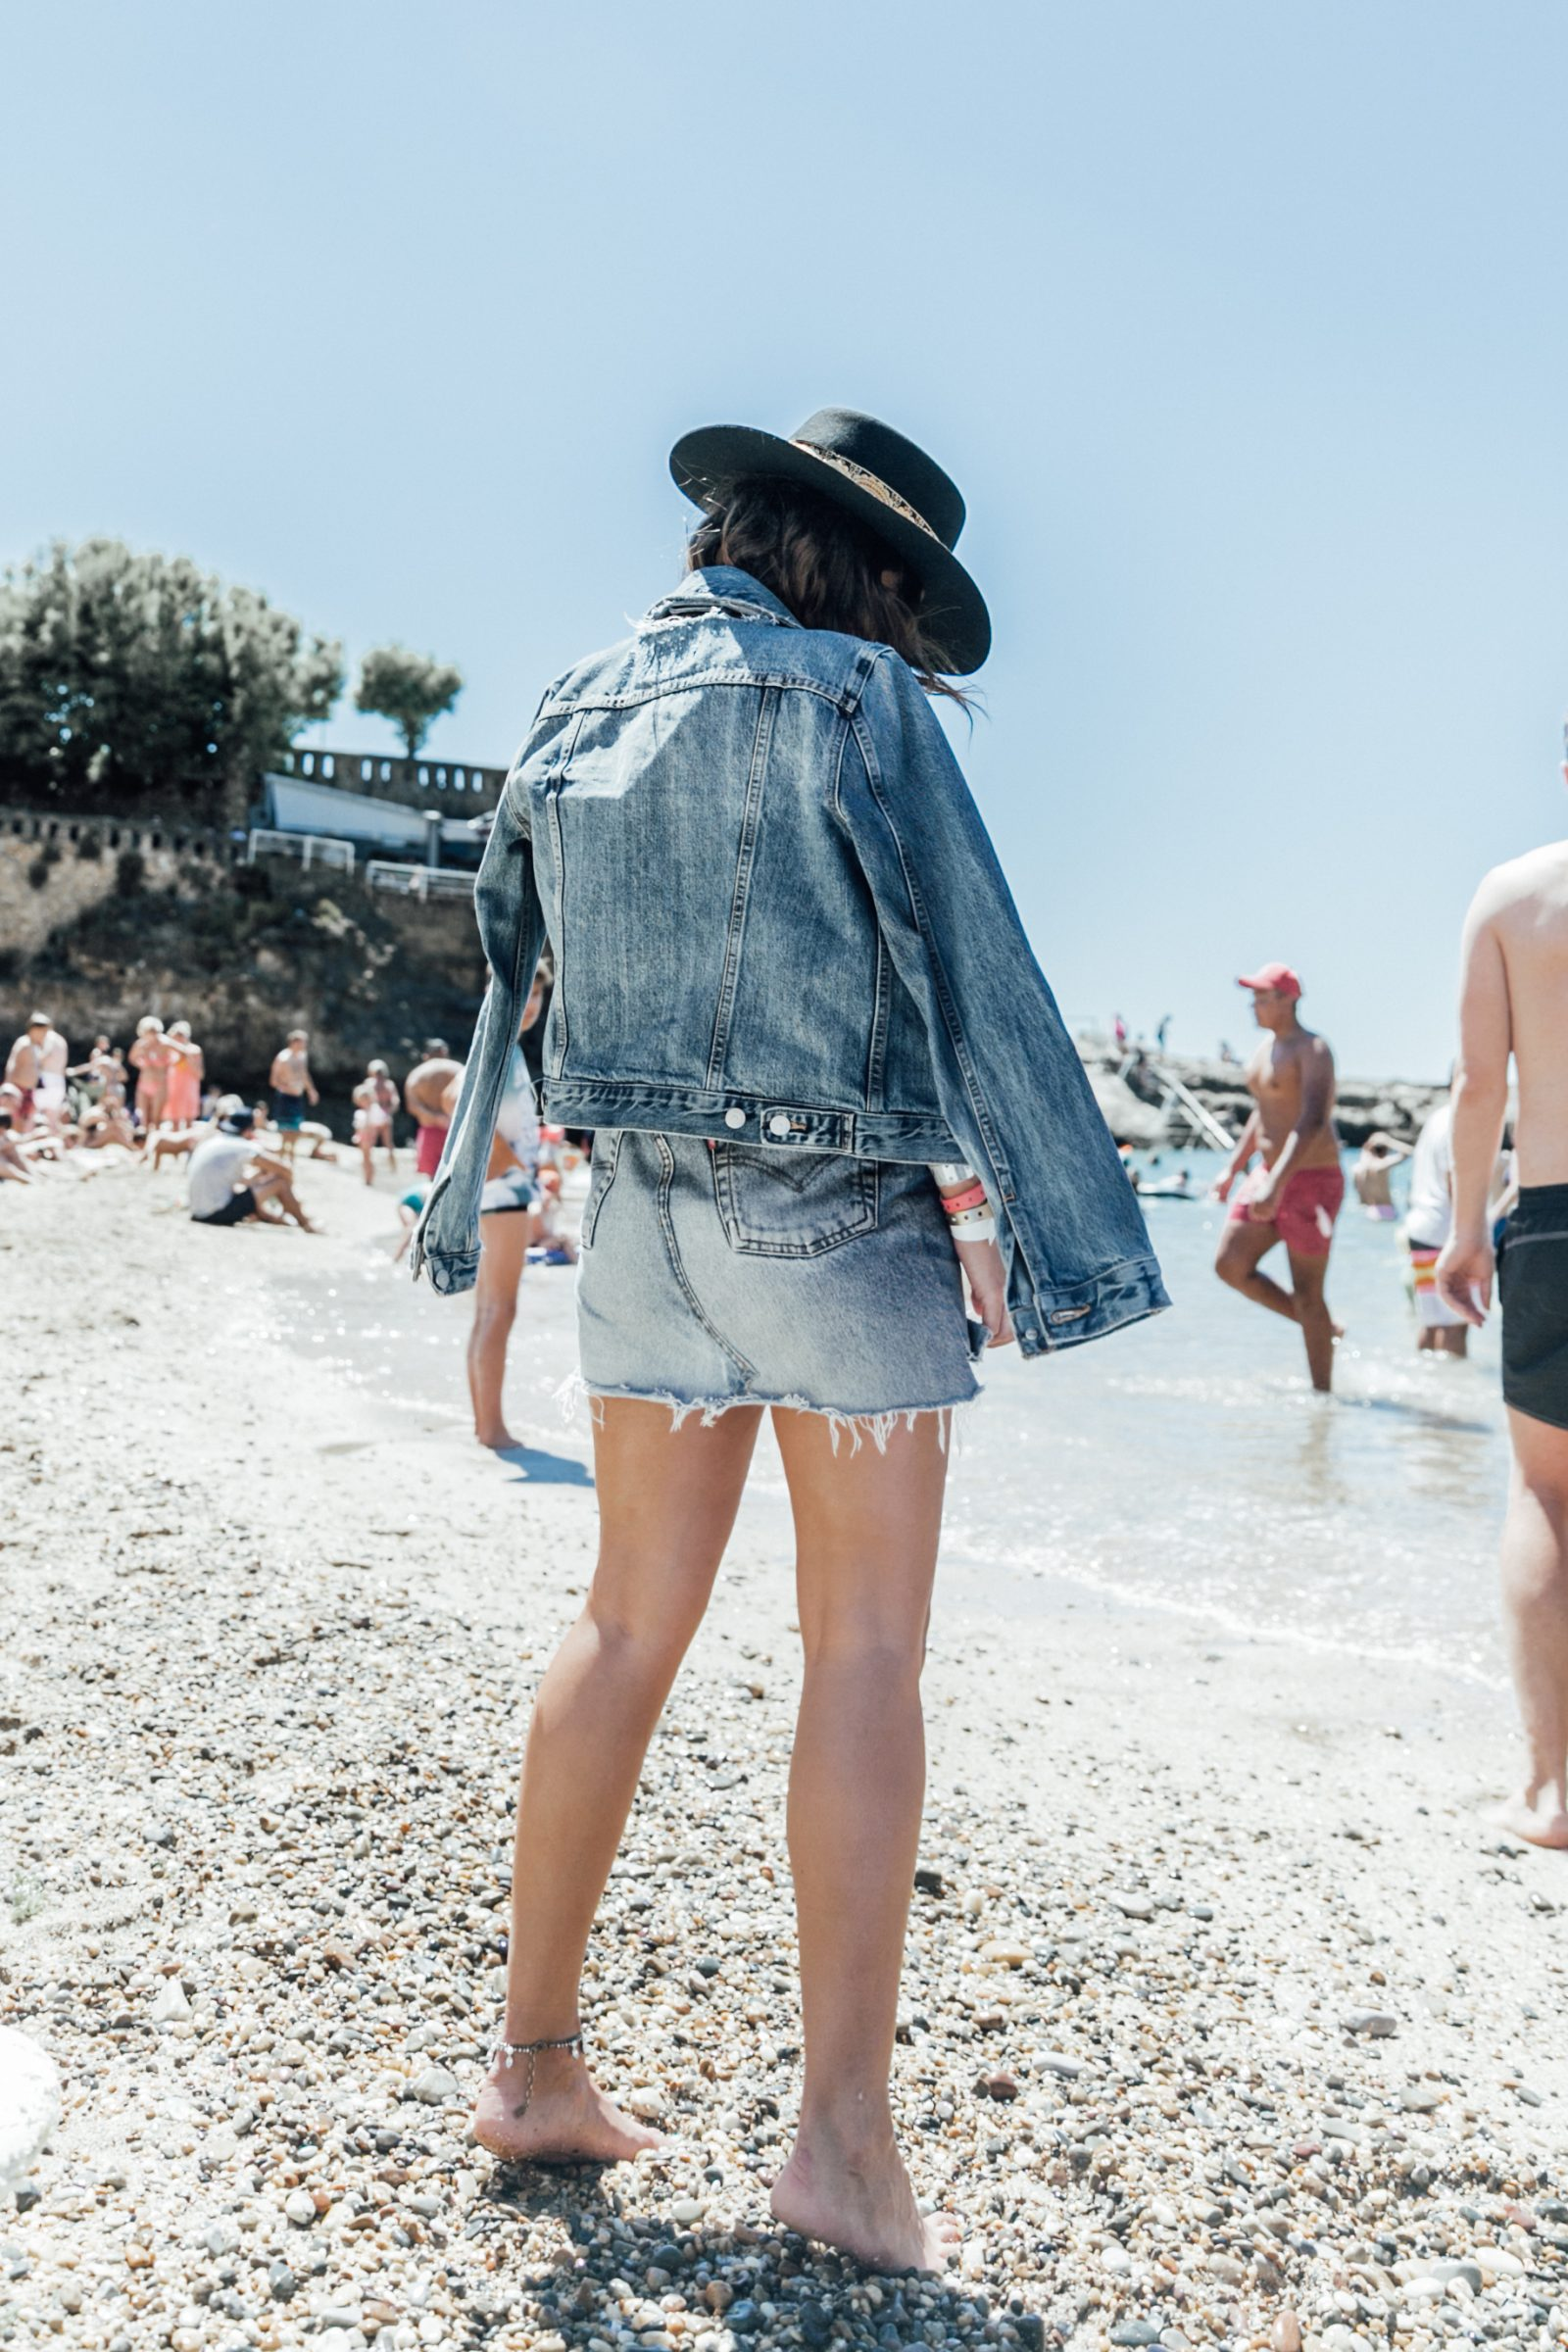 Biarritz-Big_Festival-Live_in_Levis-Double_Denim-Denim_Skirt-Denim_Jacket-Nude_Top-Lack_Of_Color_Hat-Outfit-Summer-Street_Style-30